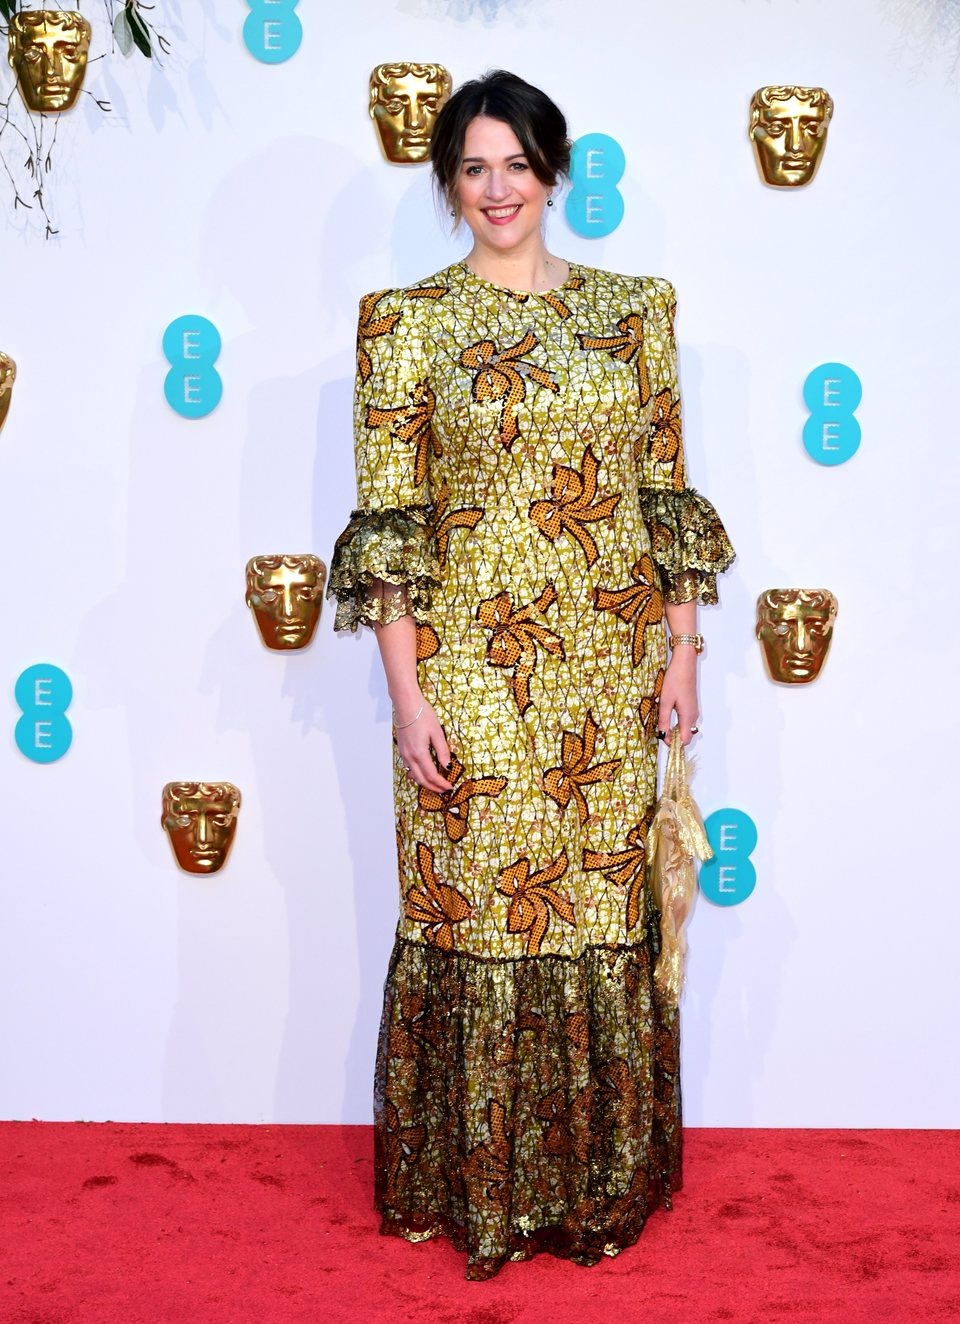 Sophie Harman at the BAFTAs 2019 Red Carpet